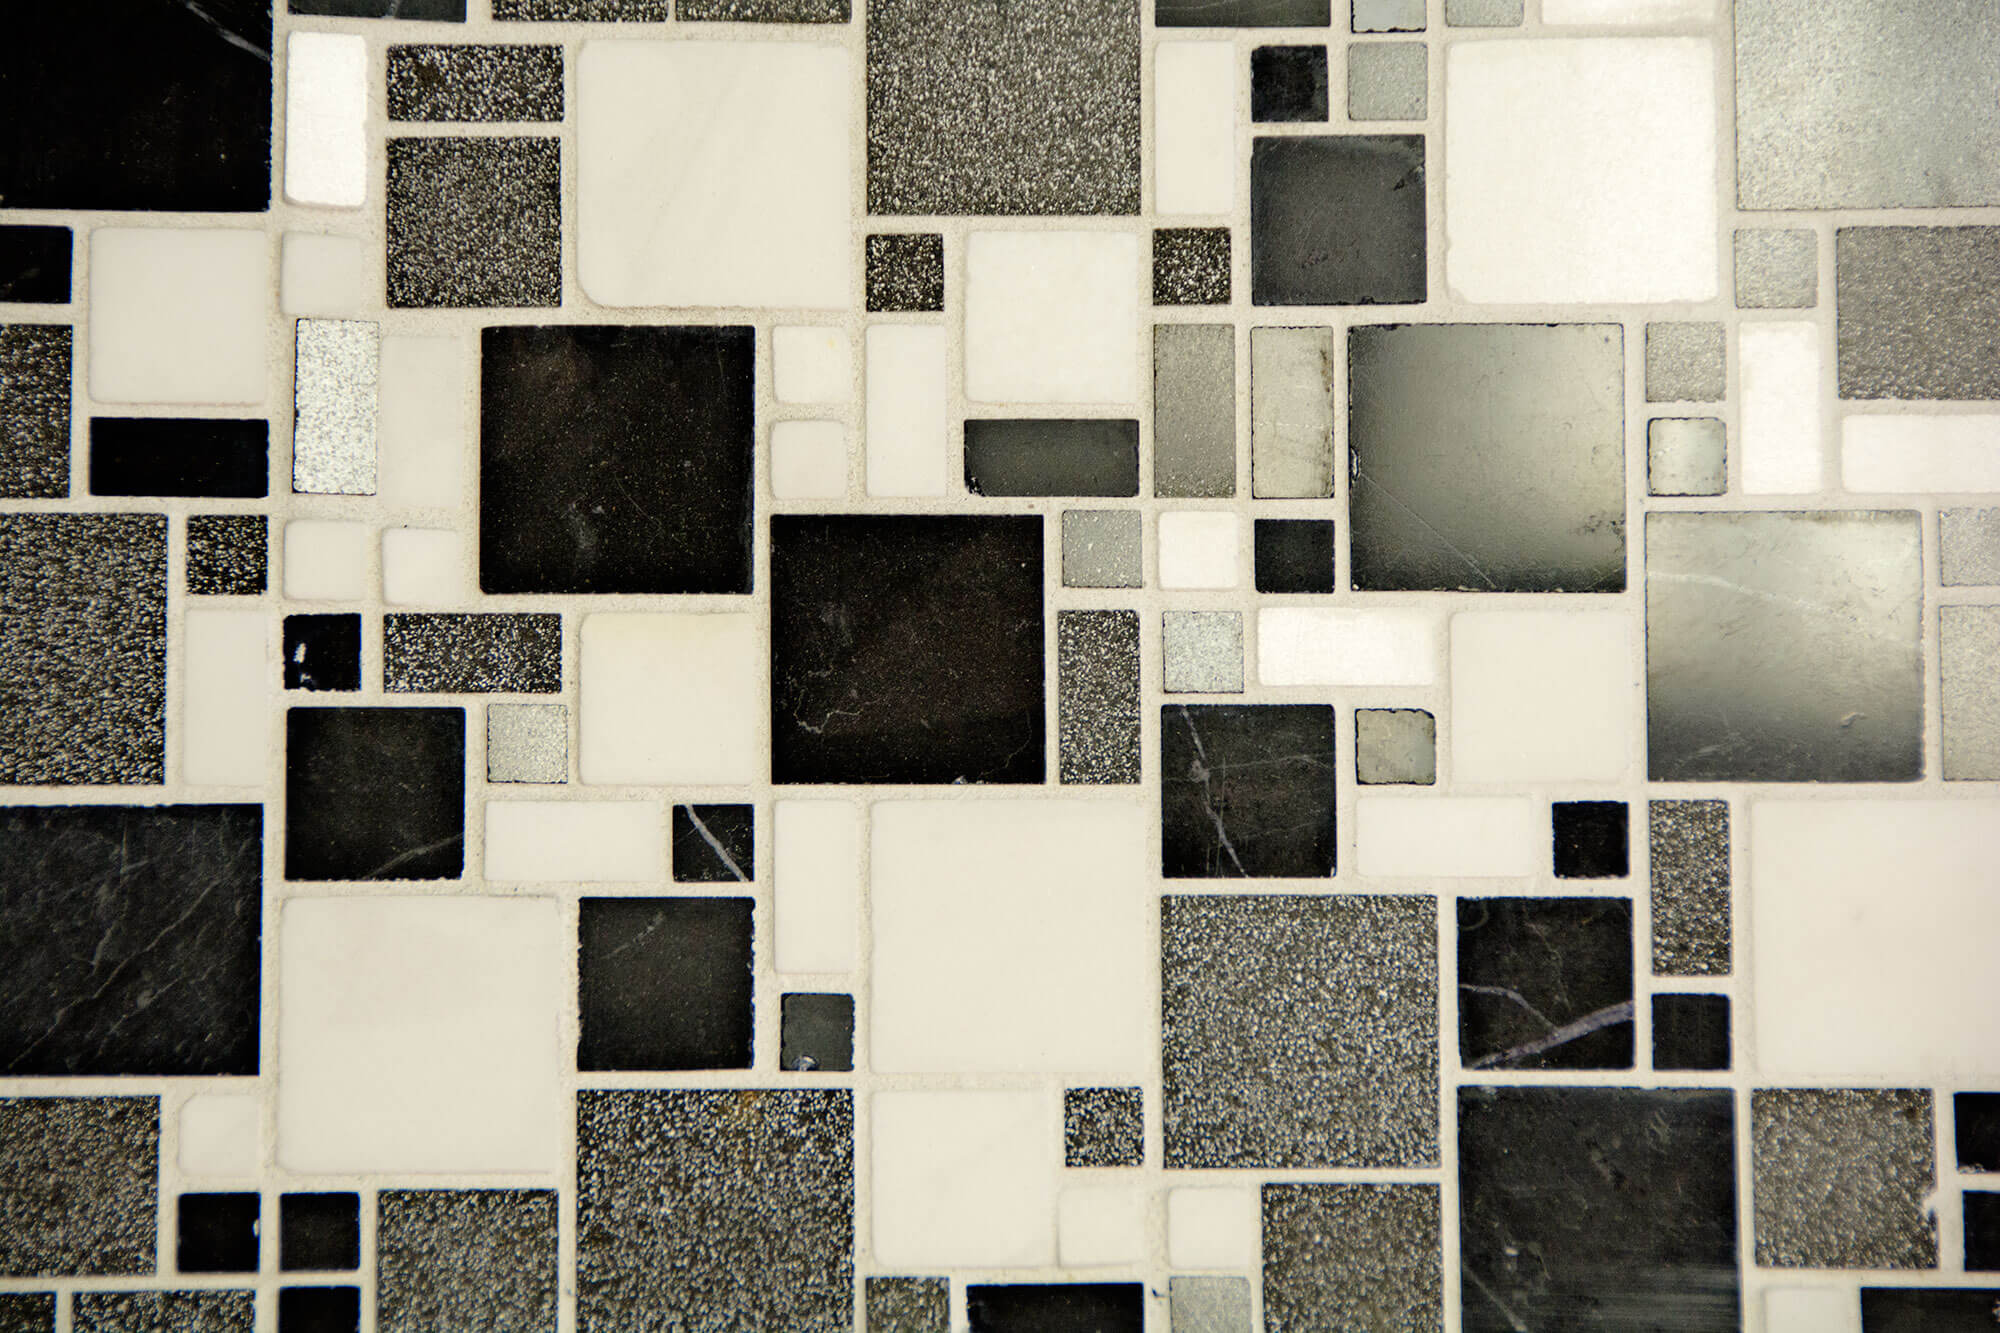 Daltile Tile from Tile Unliited in Shelbyville